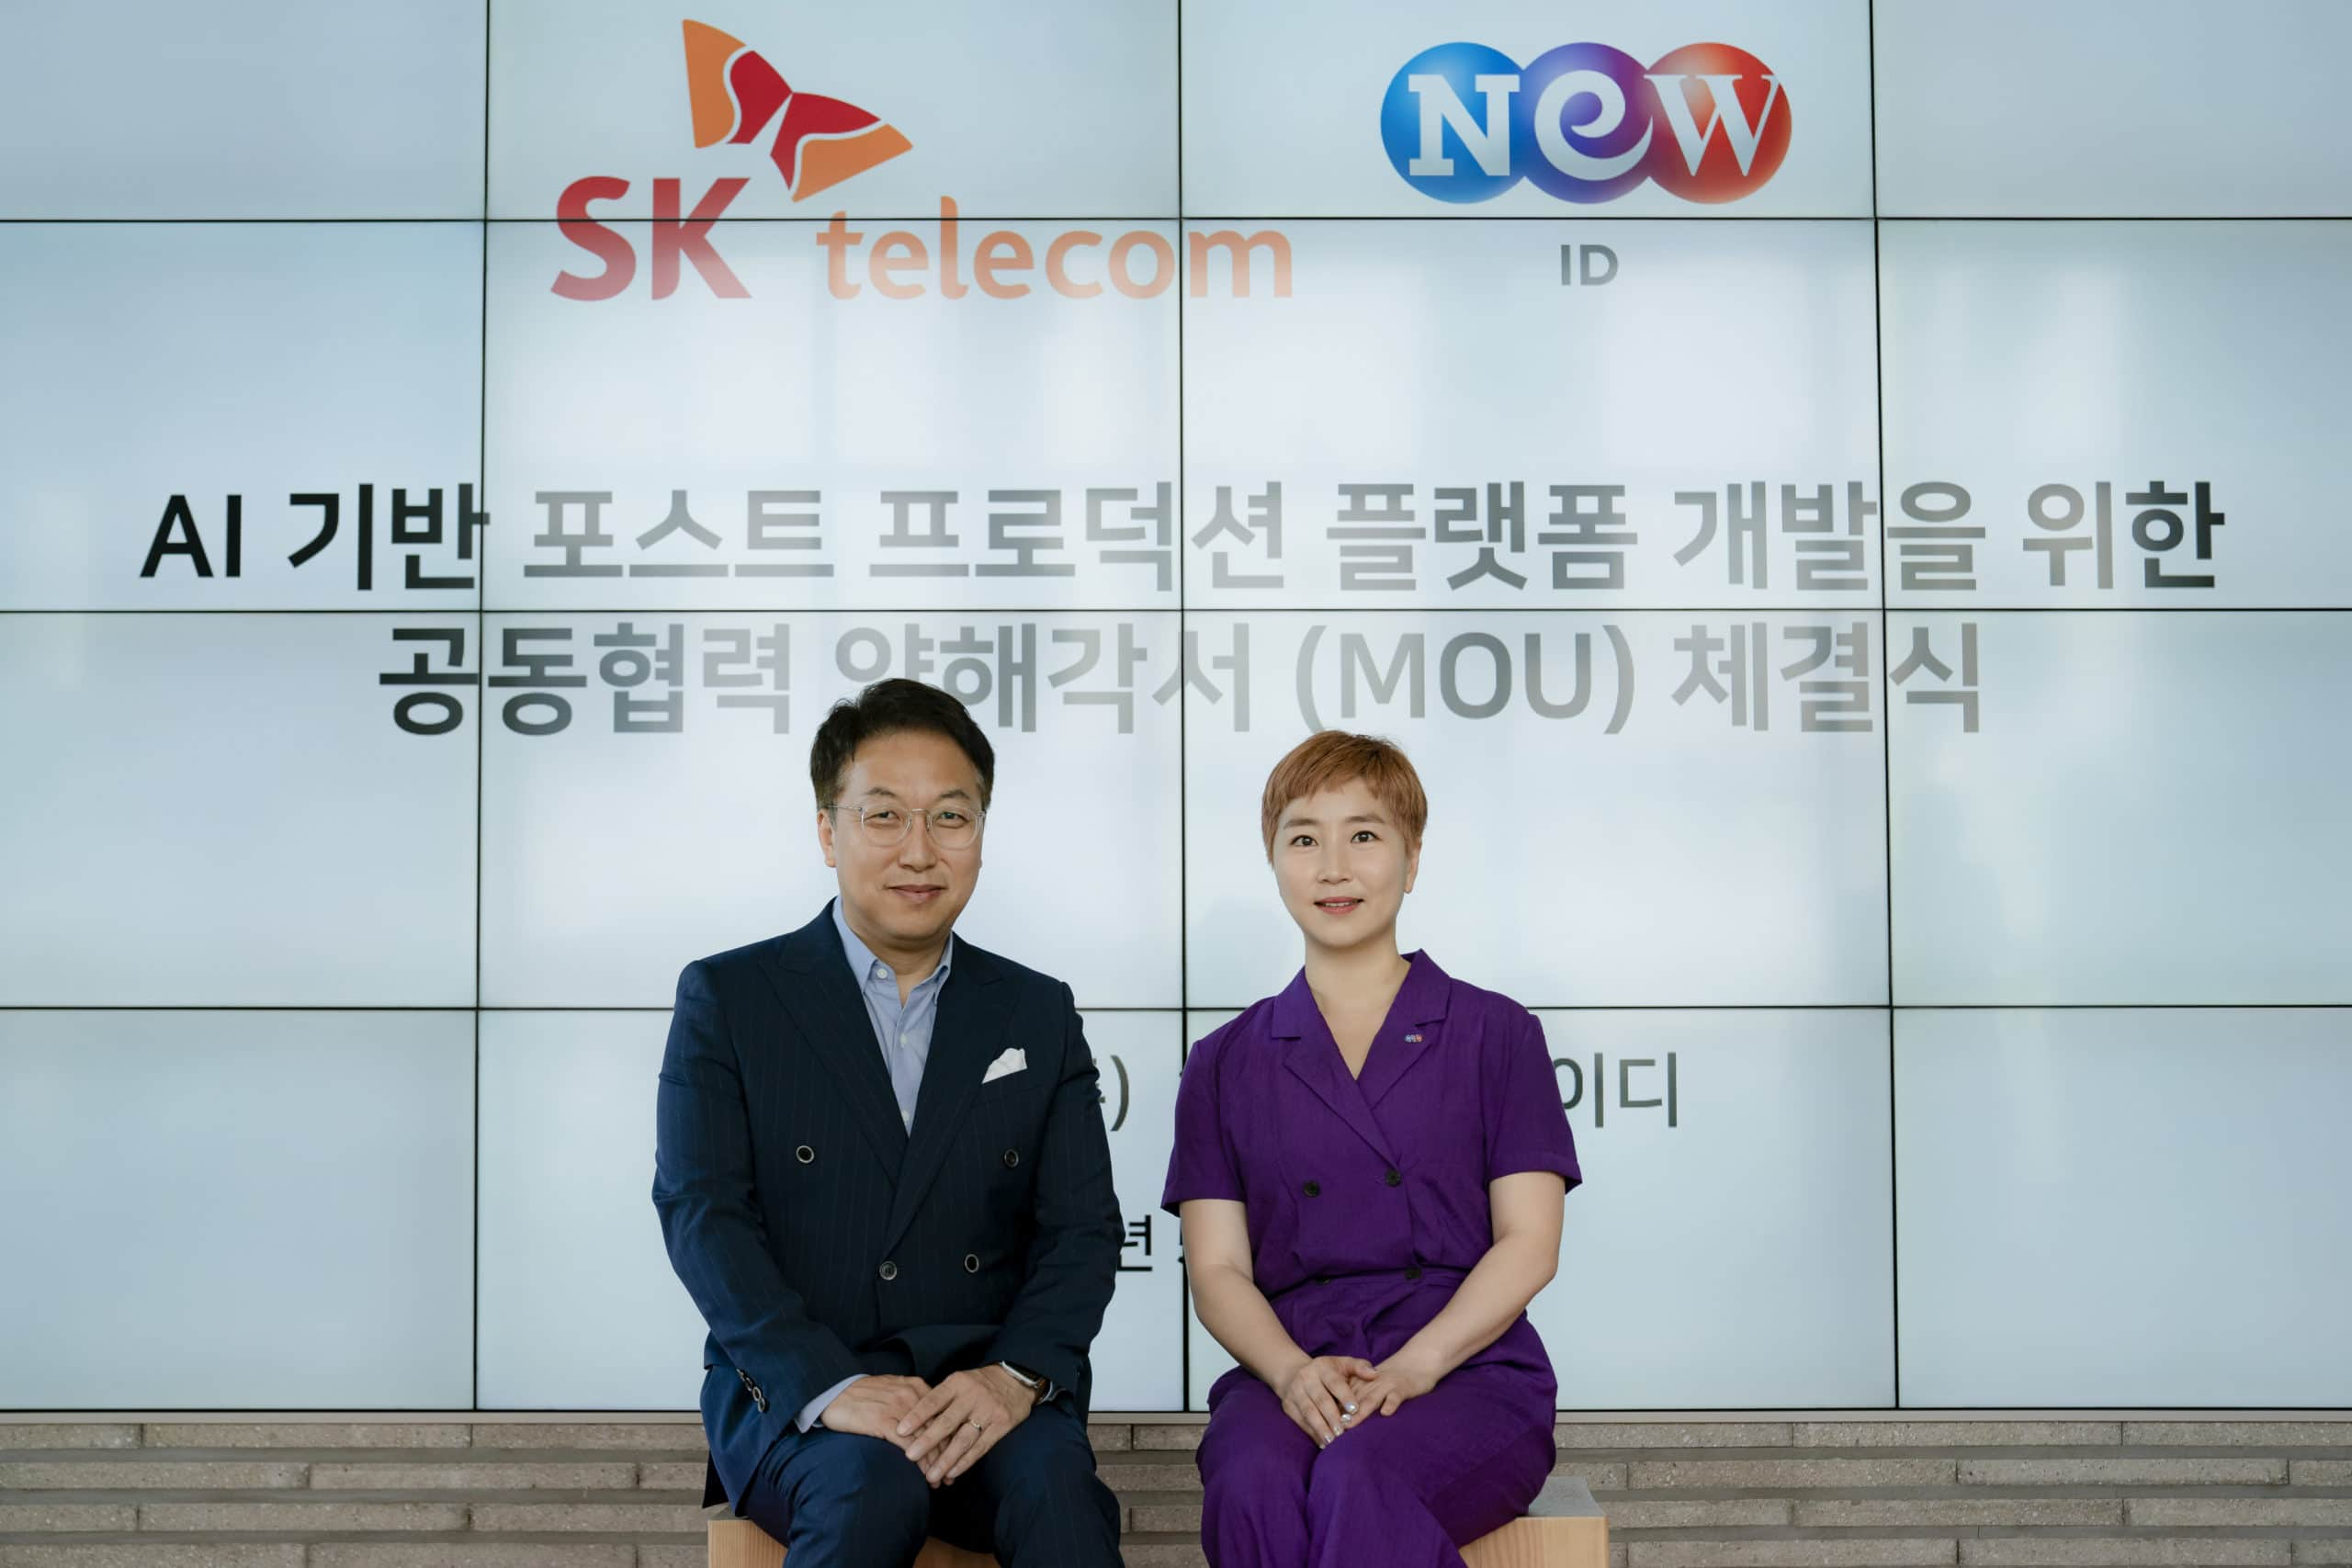 Partnership on AI technology for exporting K-contents : NEW ID & SKT